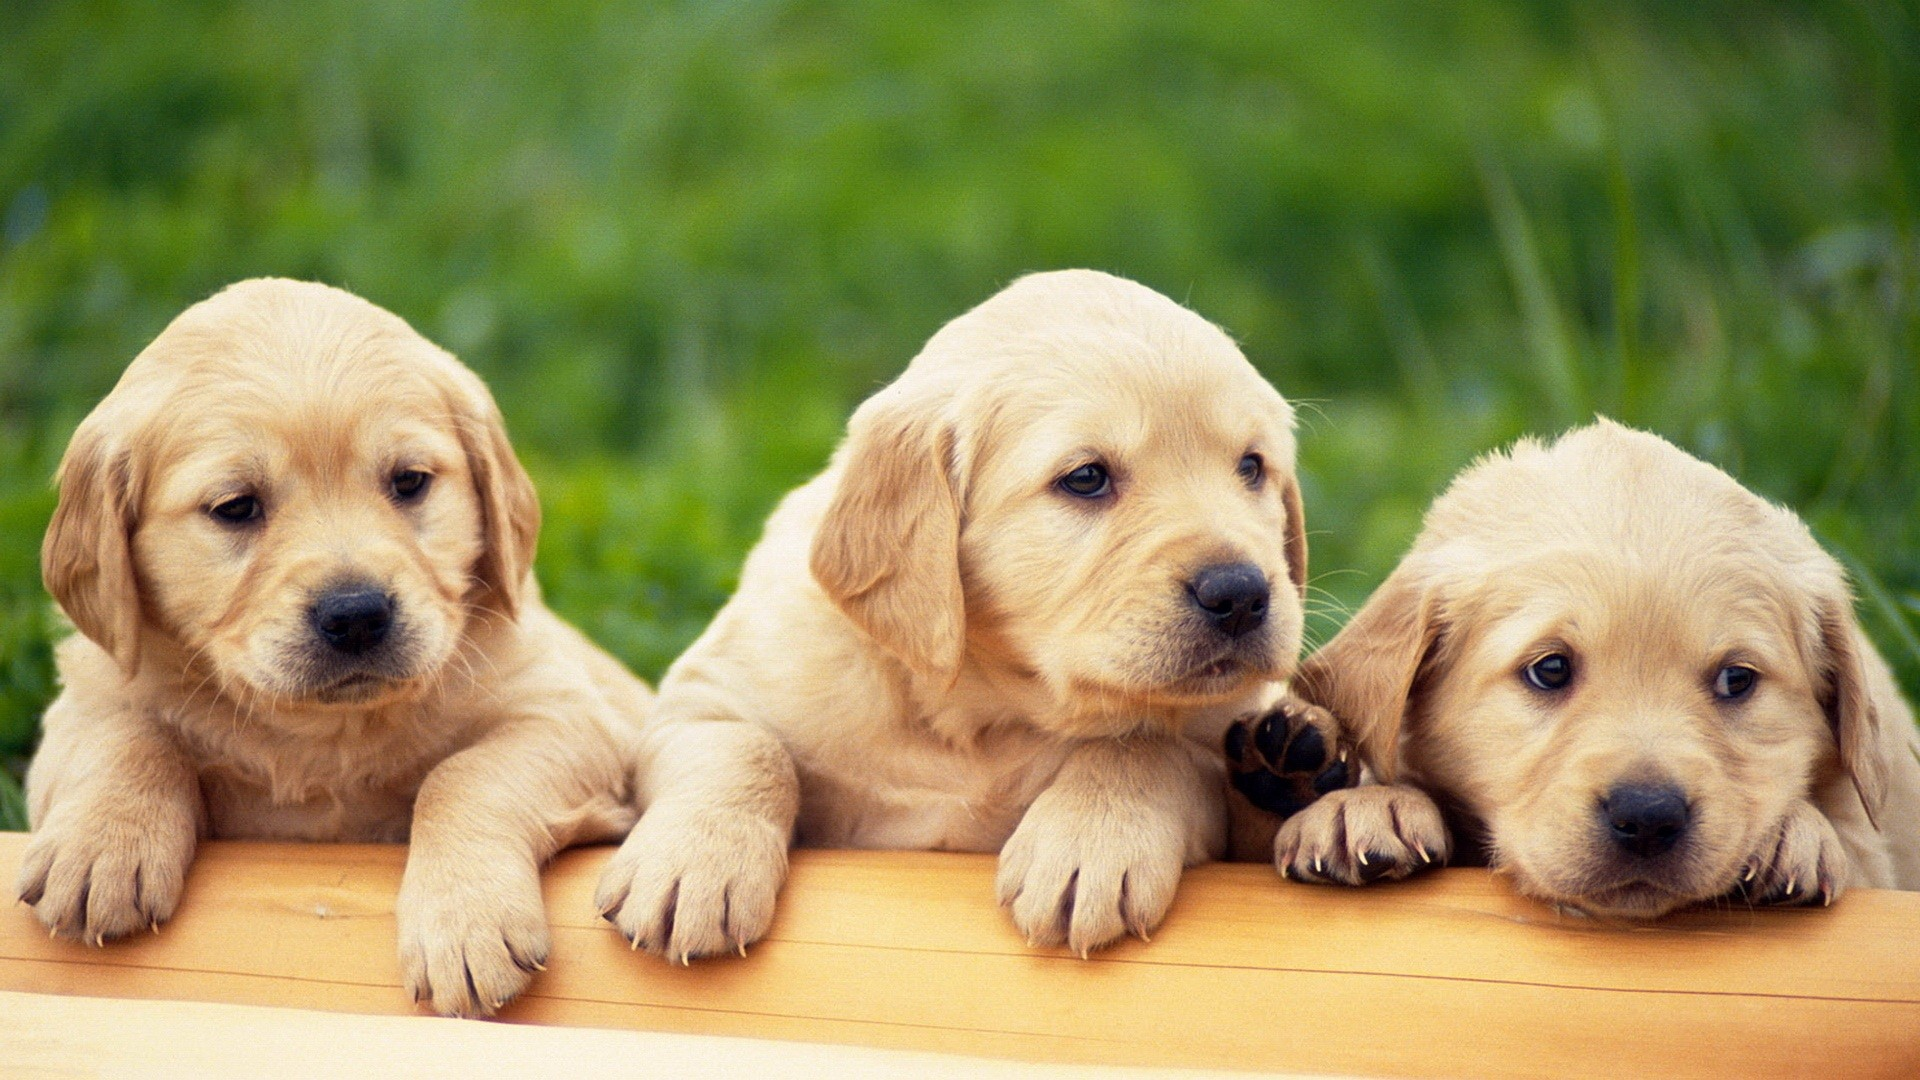 Cute Puppy Wallpapers for Desktop (58+ images)